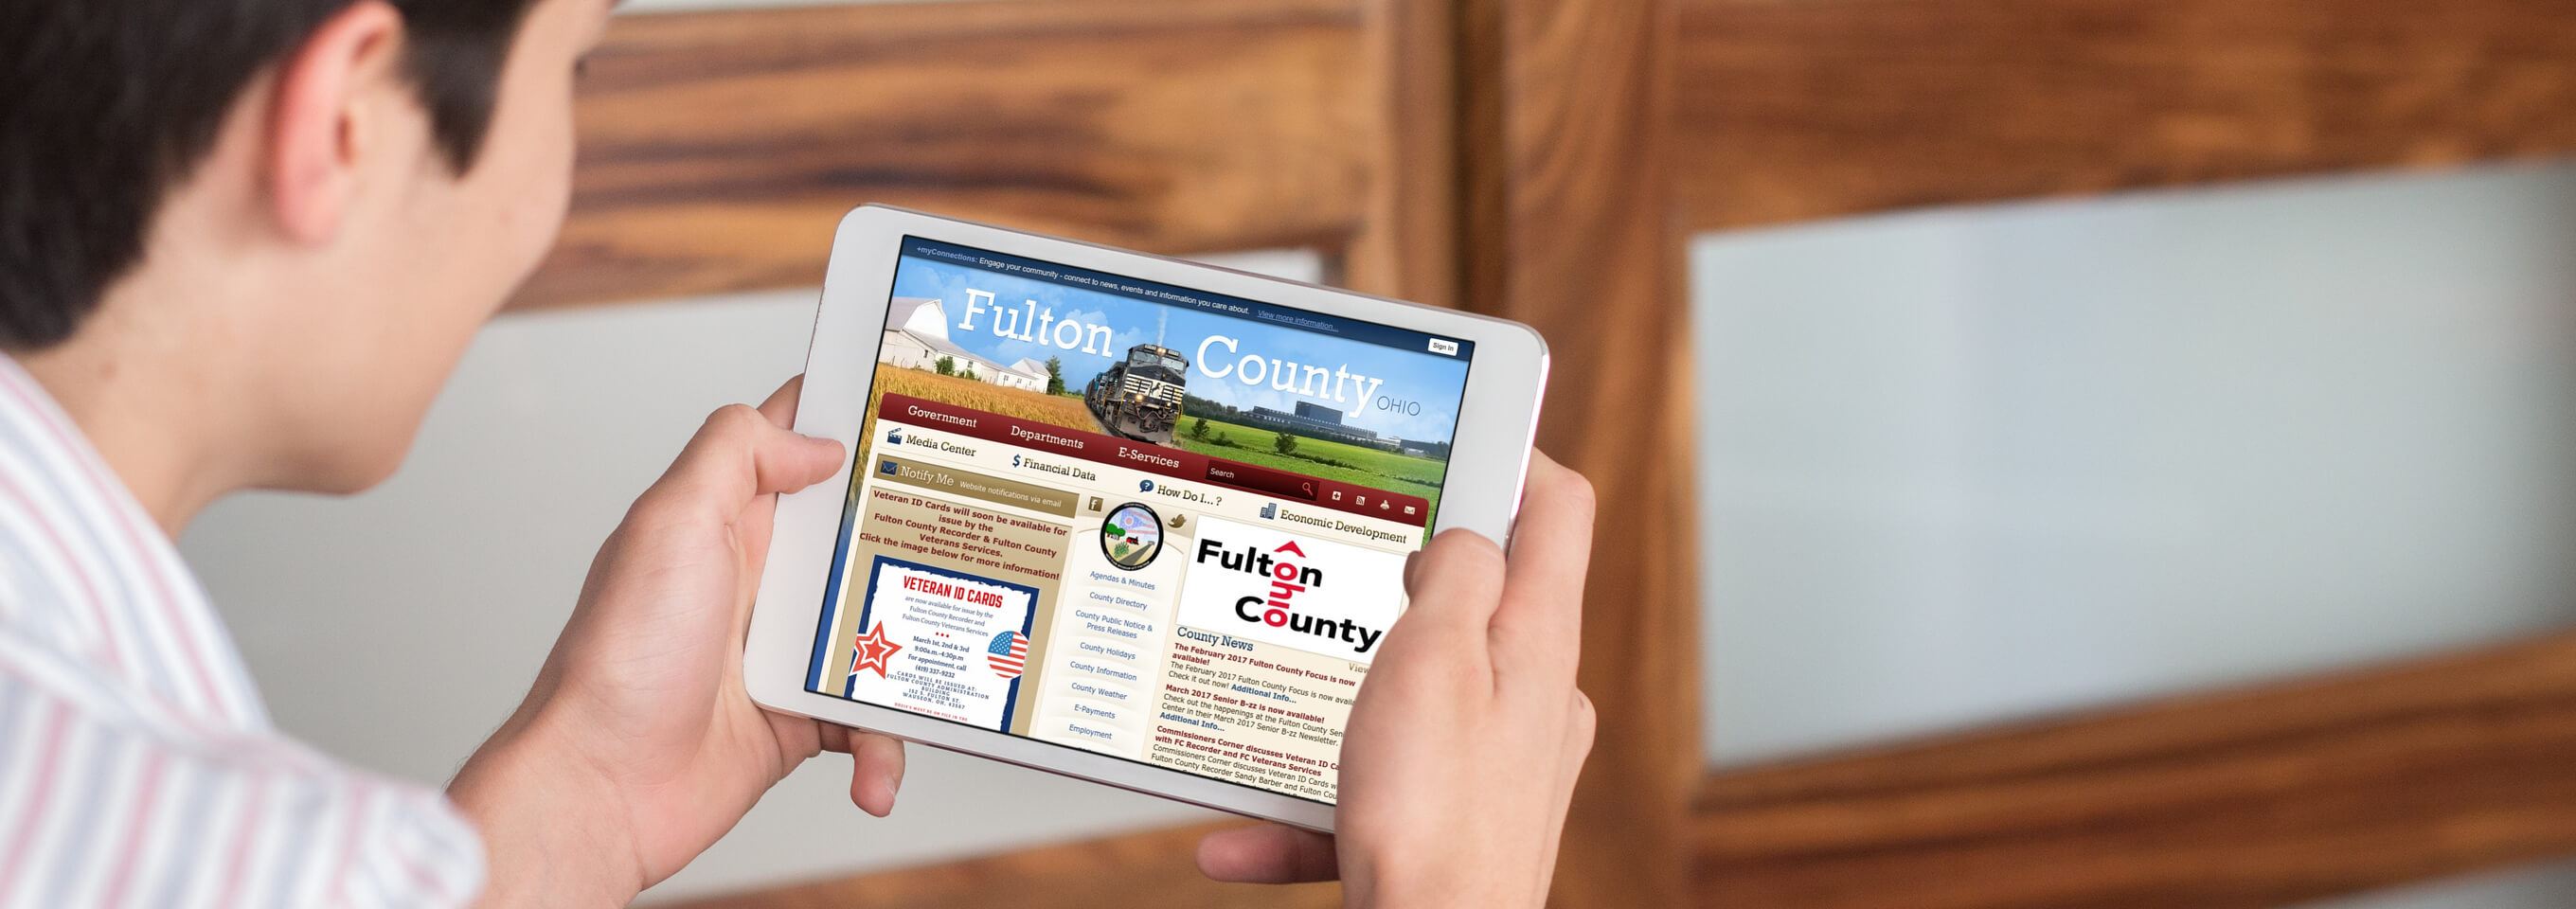 Fulton, OH Uses CivicMobile App to Implement Creative Citizen Engagement Strategies_Home (1).jpg